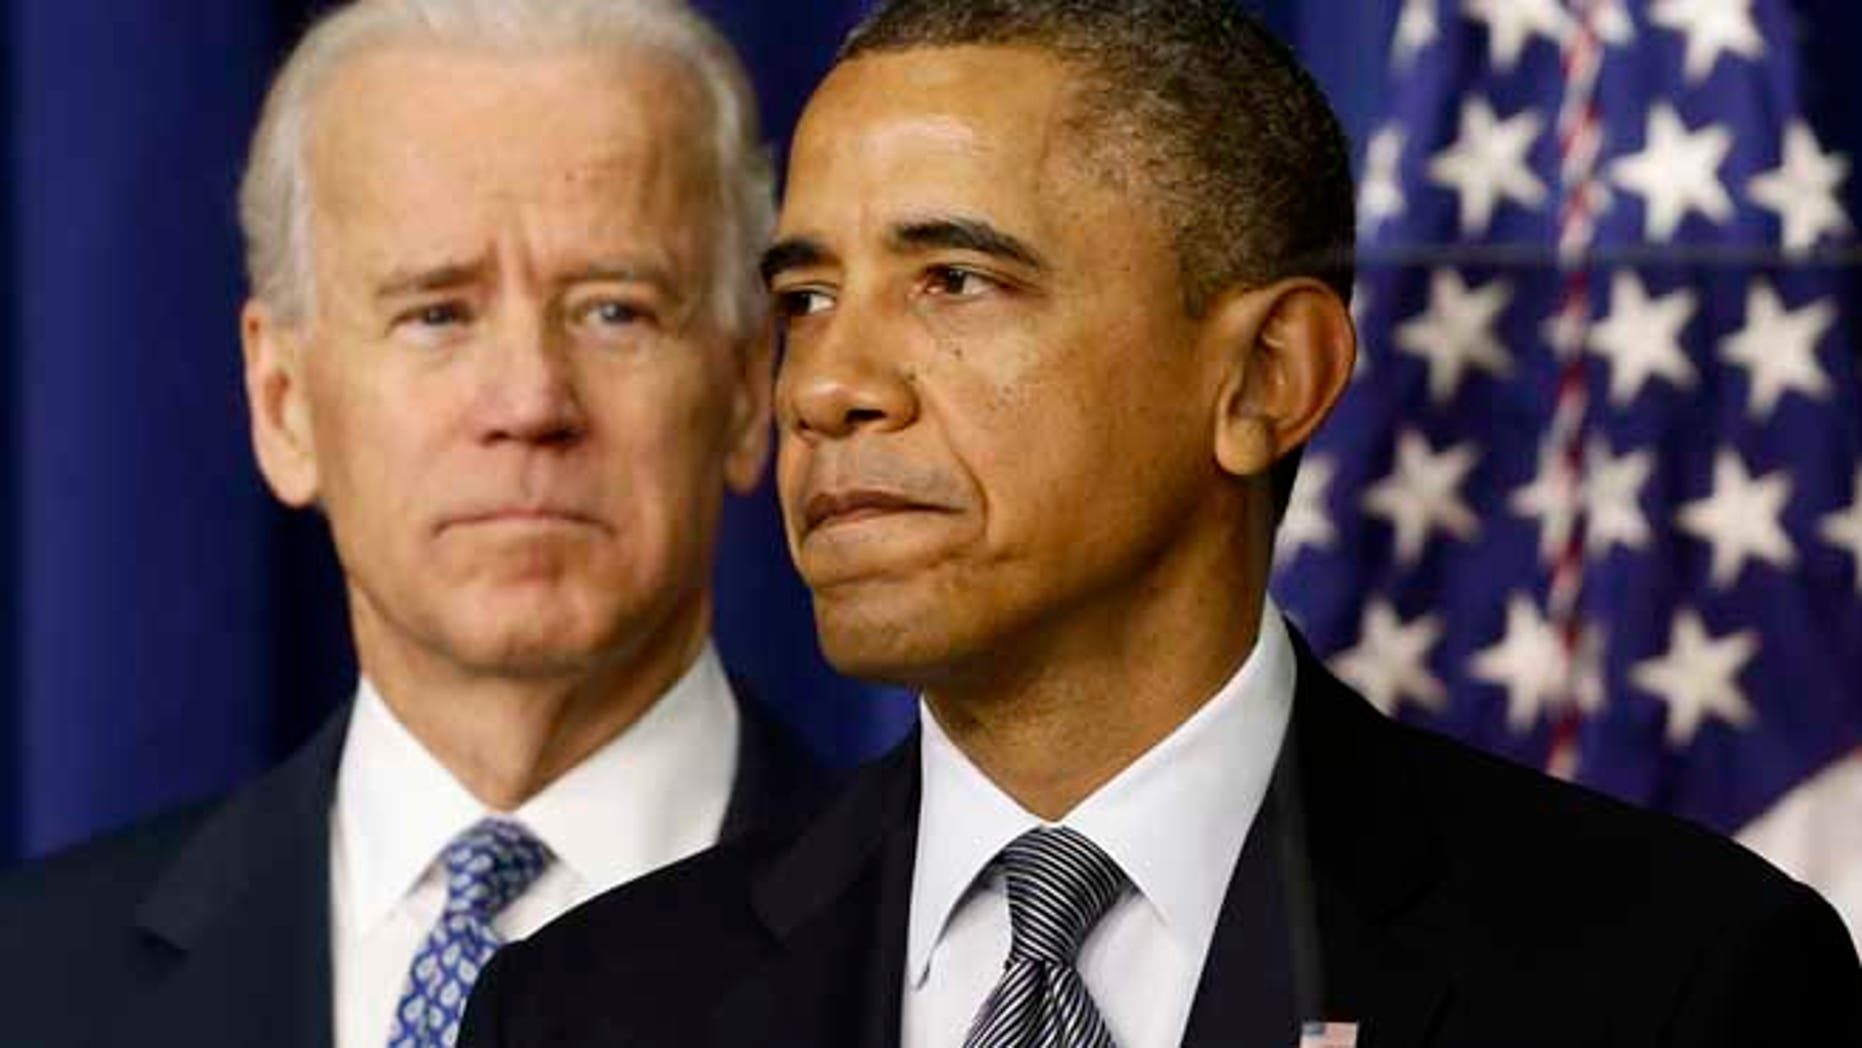 President Barack Obama, accompanied by Vice President  Joe Biden, talks about proposals to reduce gun violence, Wednesday, Jan. 16, 2013, in the South Court Auditorium at the White House in Washington. (AP Photo/Charles Dharapak)